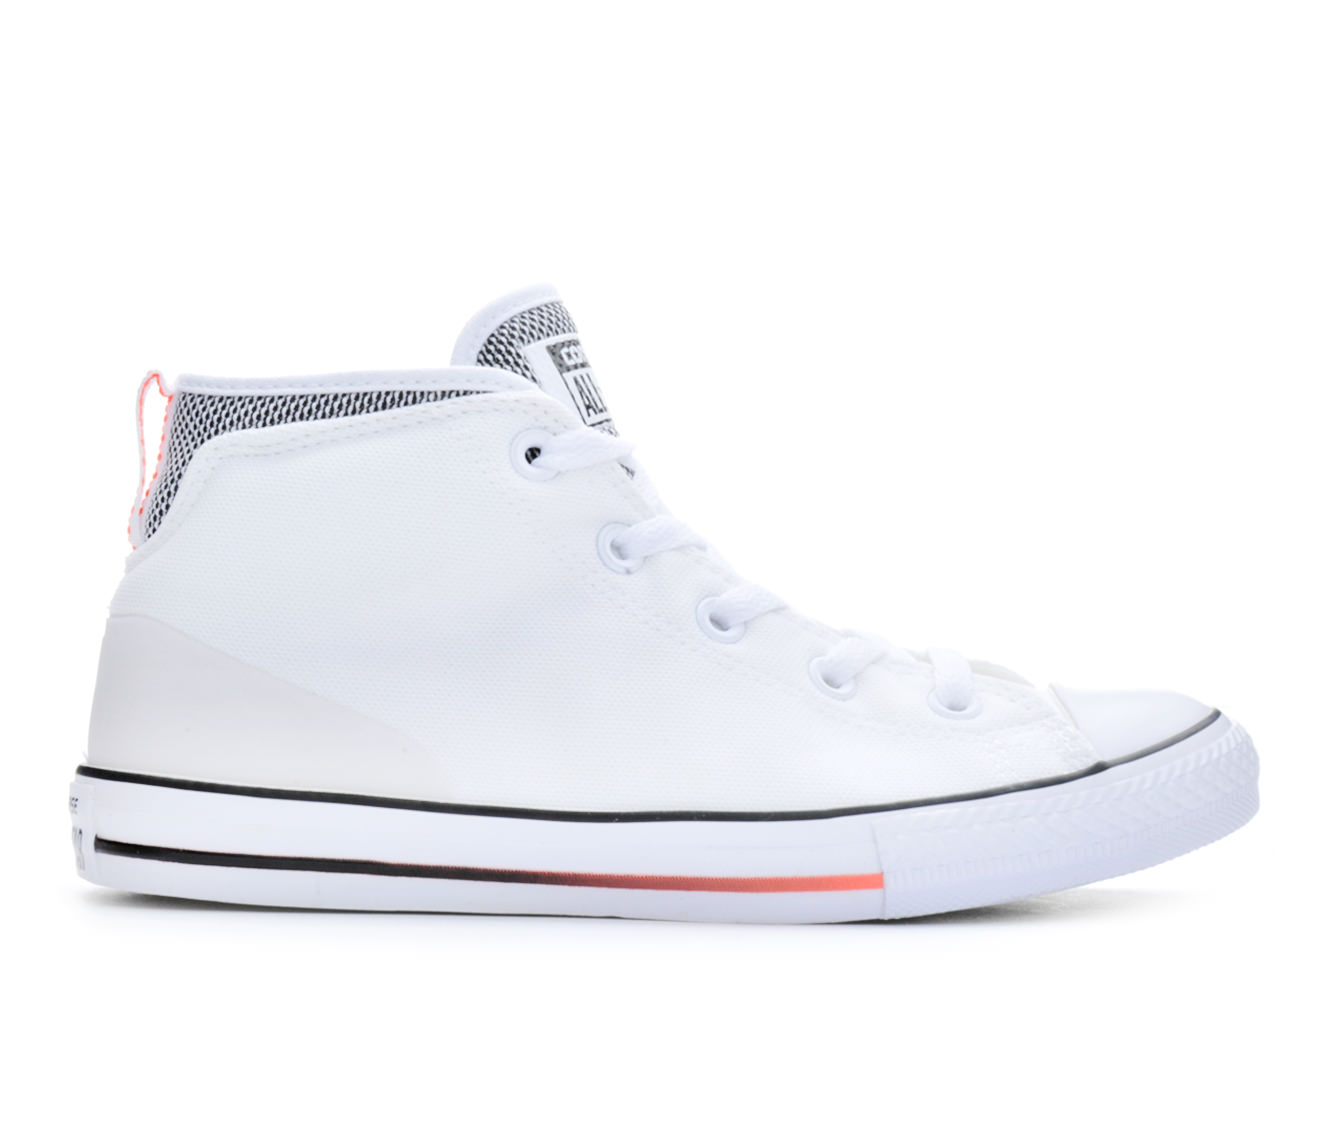 Boys' Converse Syde Street Summer Canvas Sneakers (White)